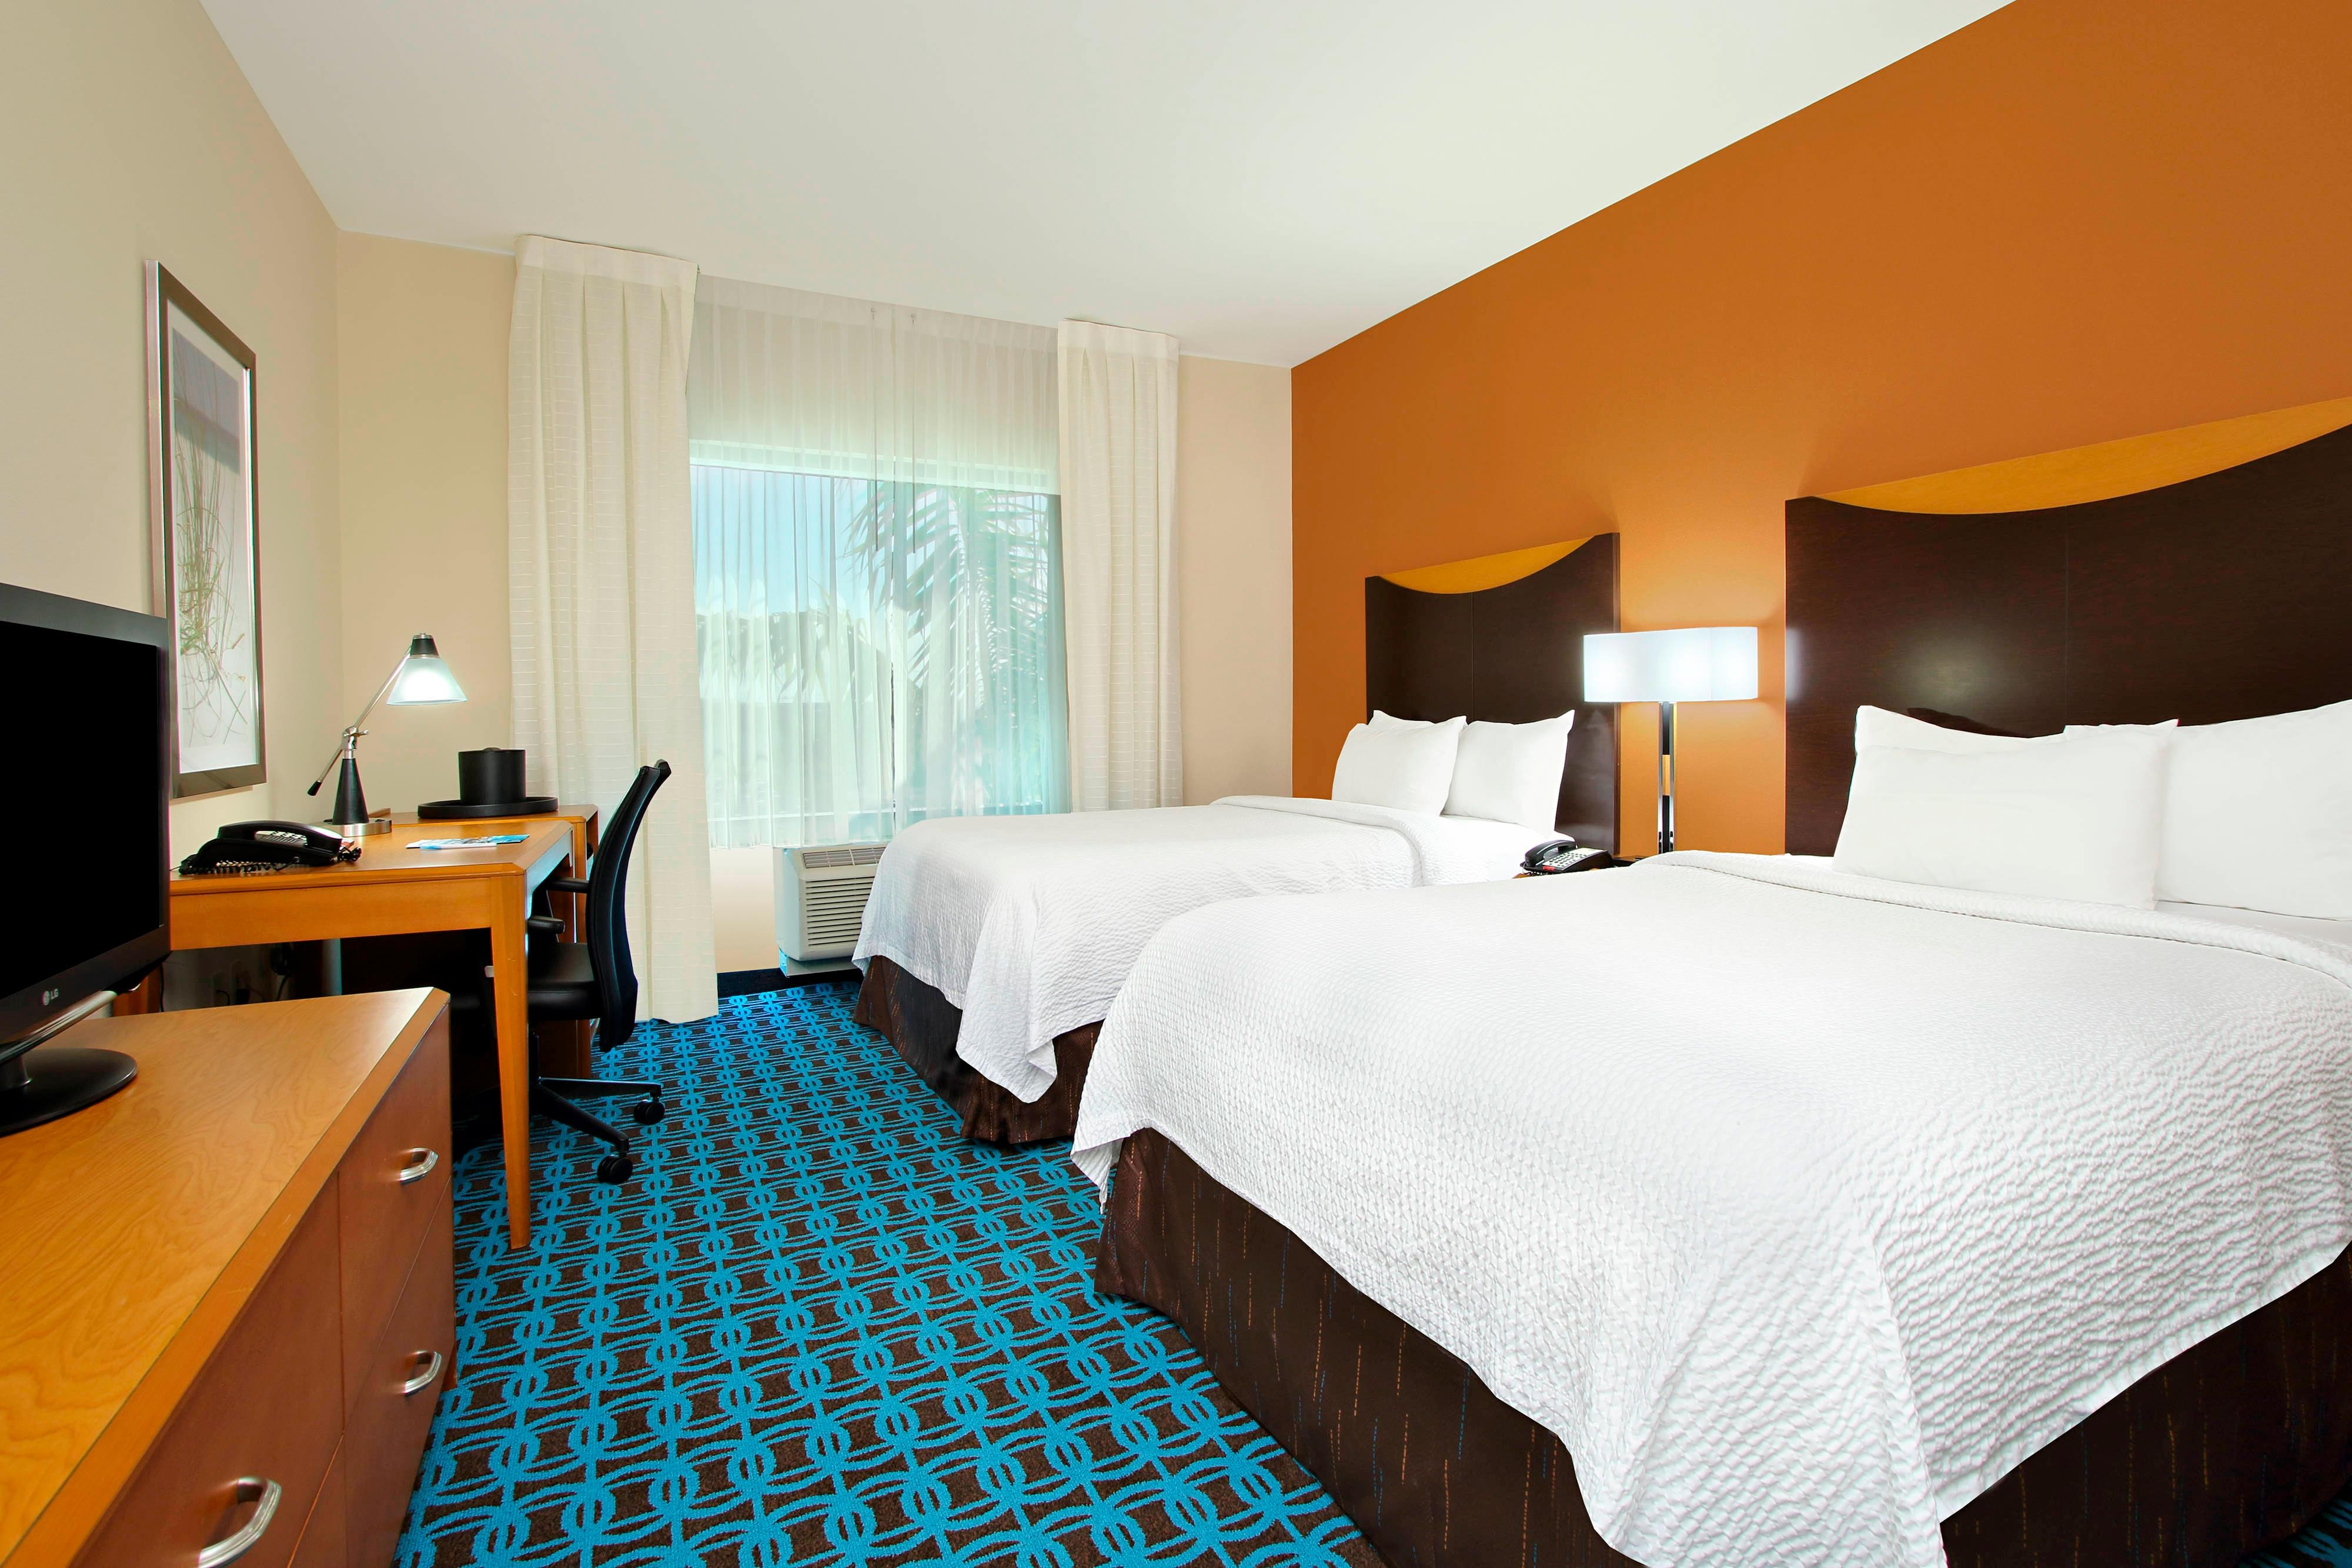 Fort Lauderdale FL Suites | Fairfield Inn Ft Lauderdale FL Hotel